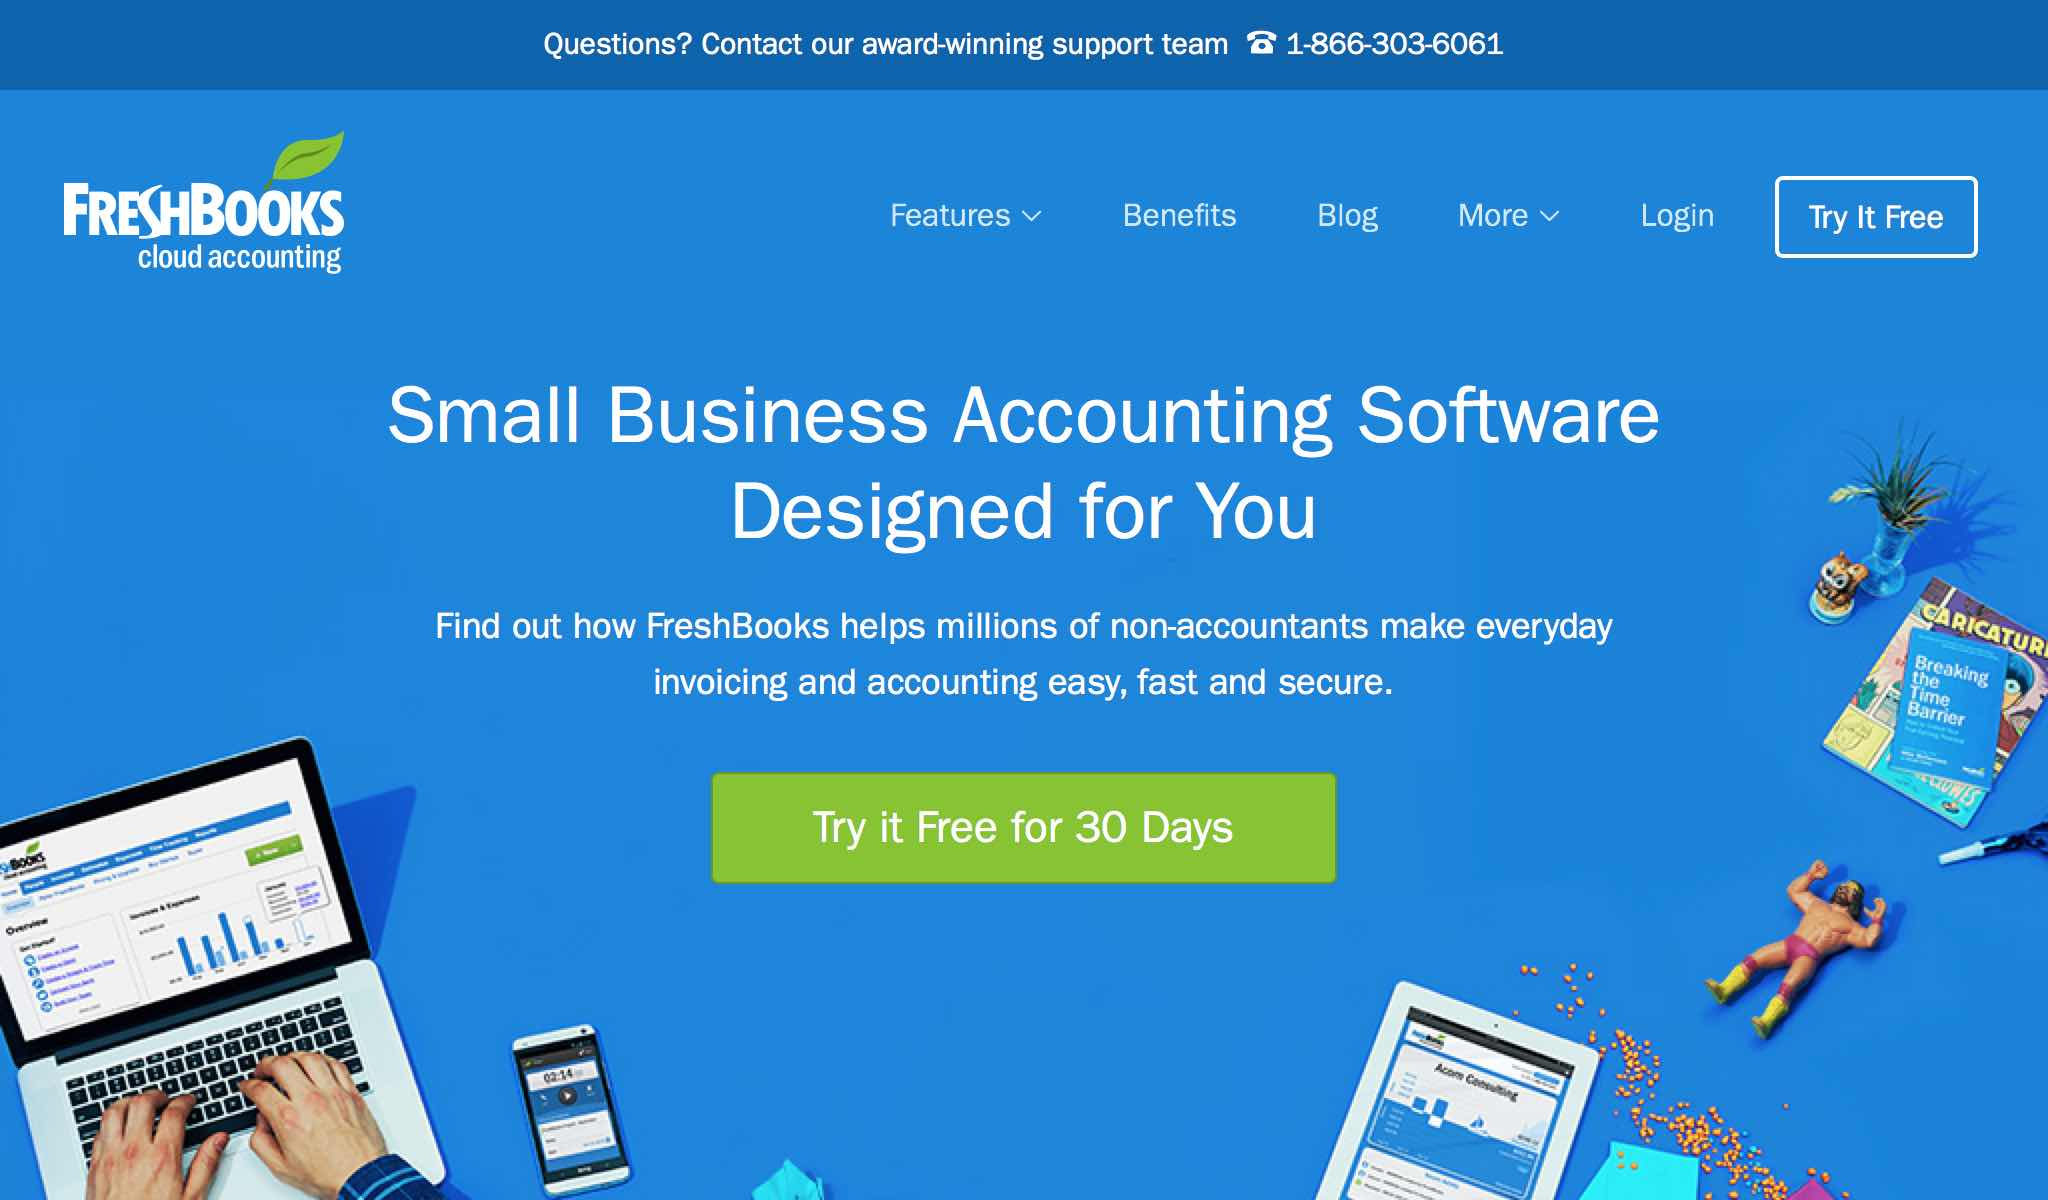 Small Business Accounting Software in the Cloud | FreshBooks